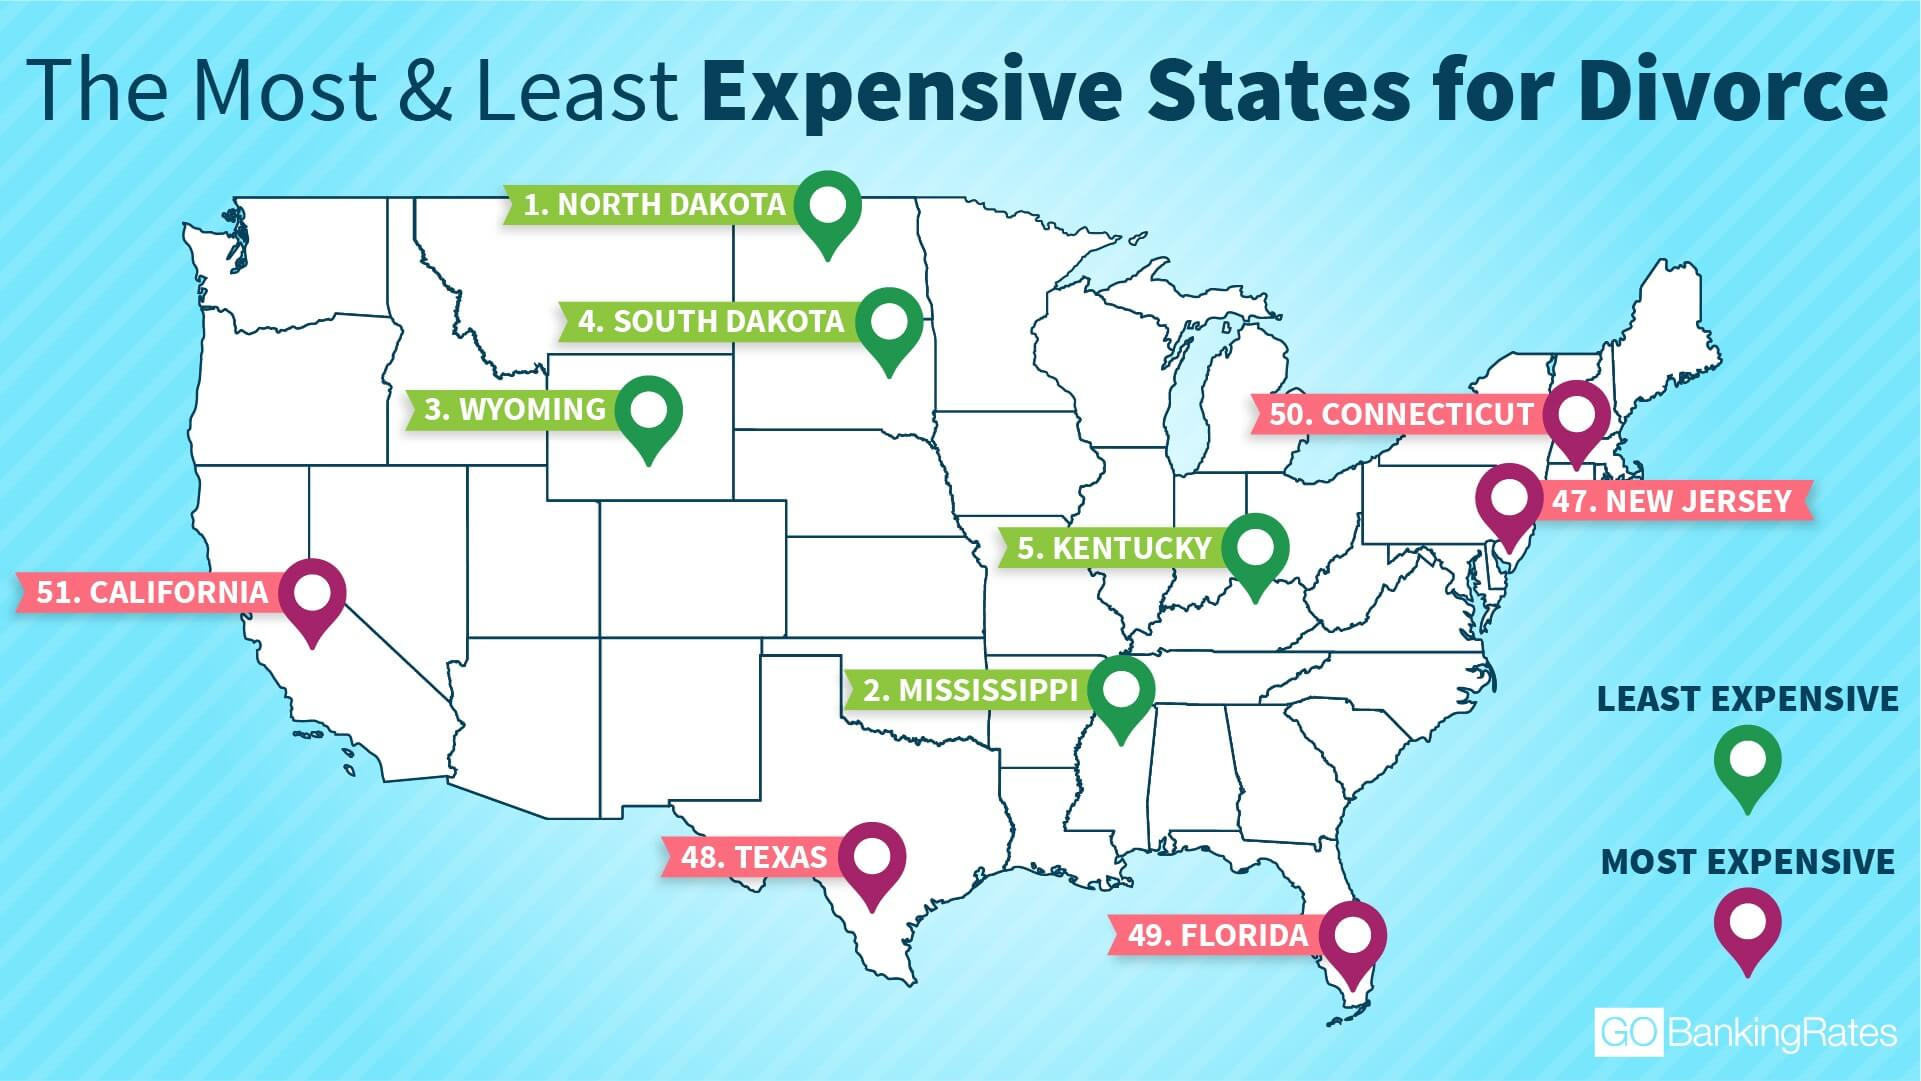 Getting a divorce is cheaper in these 5 states study finds map of the most and least expensive states for divorce solutioingenieria